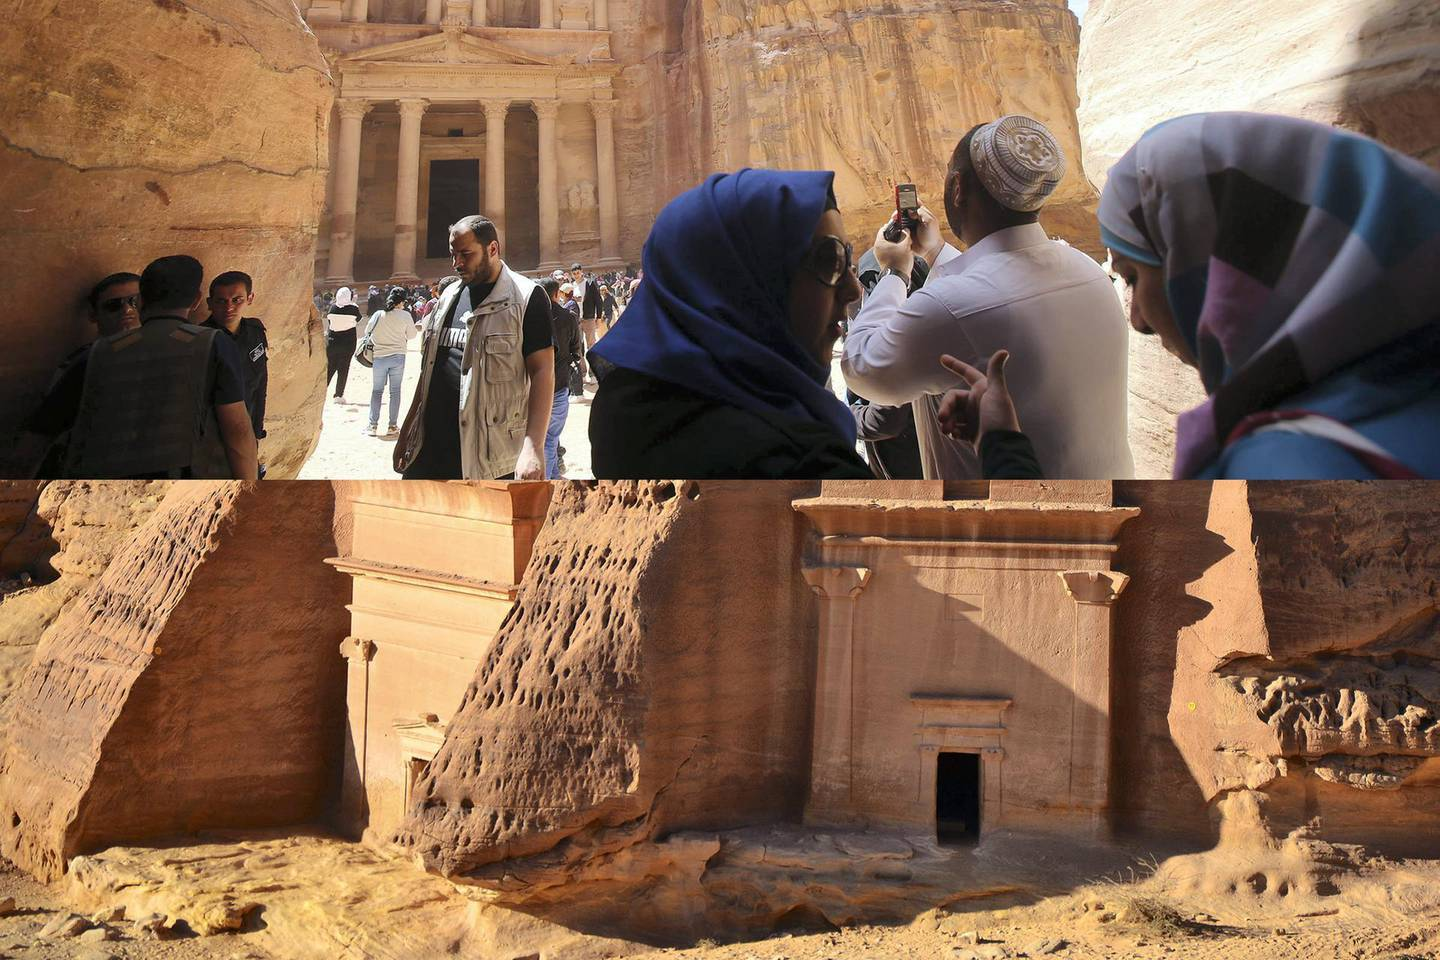 PETRA, JORDAN- APRIL 3: Tourists visit the legendary Petra, Jordan's most famous tourist attraction on April 3, 2015 in Petra, Jordan. Stakeholders have put together an urgent marketing plan to 'salvage' the Kingdom's tourism industry by promoting national tourist products in new and traditional markets worldwide, according to Tourism Minister Nayef Al Fayez. Visits to Jordan and its famous archeological site of Petra have plummeted because of unrest in the broader Middle East, and discounts on airfare and tours to the country have yet to bring visitor numbers back to levels seen in years past. The number of Arab tourists has not been affected by the regional turmoil, but the number of visitors to archaeological sites has recently dropped and those who visit these sites are mostly non-Arabs. (Photo by Jordan Pix/ Getty Iimages)